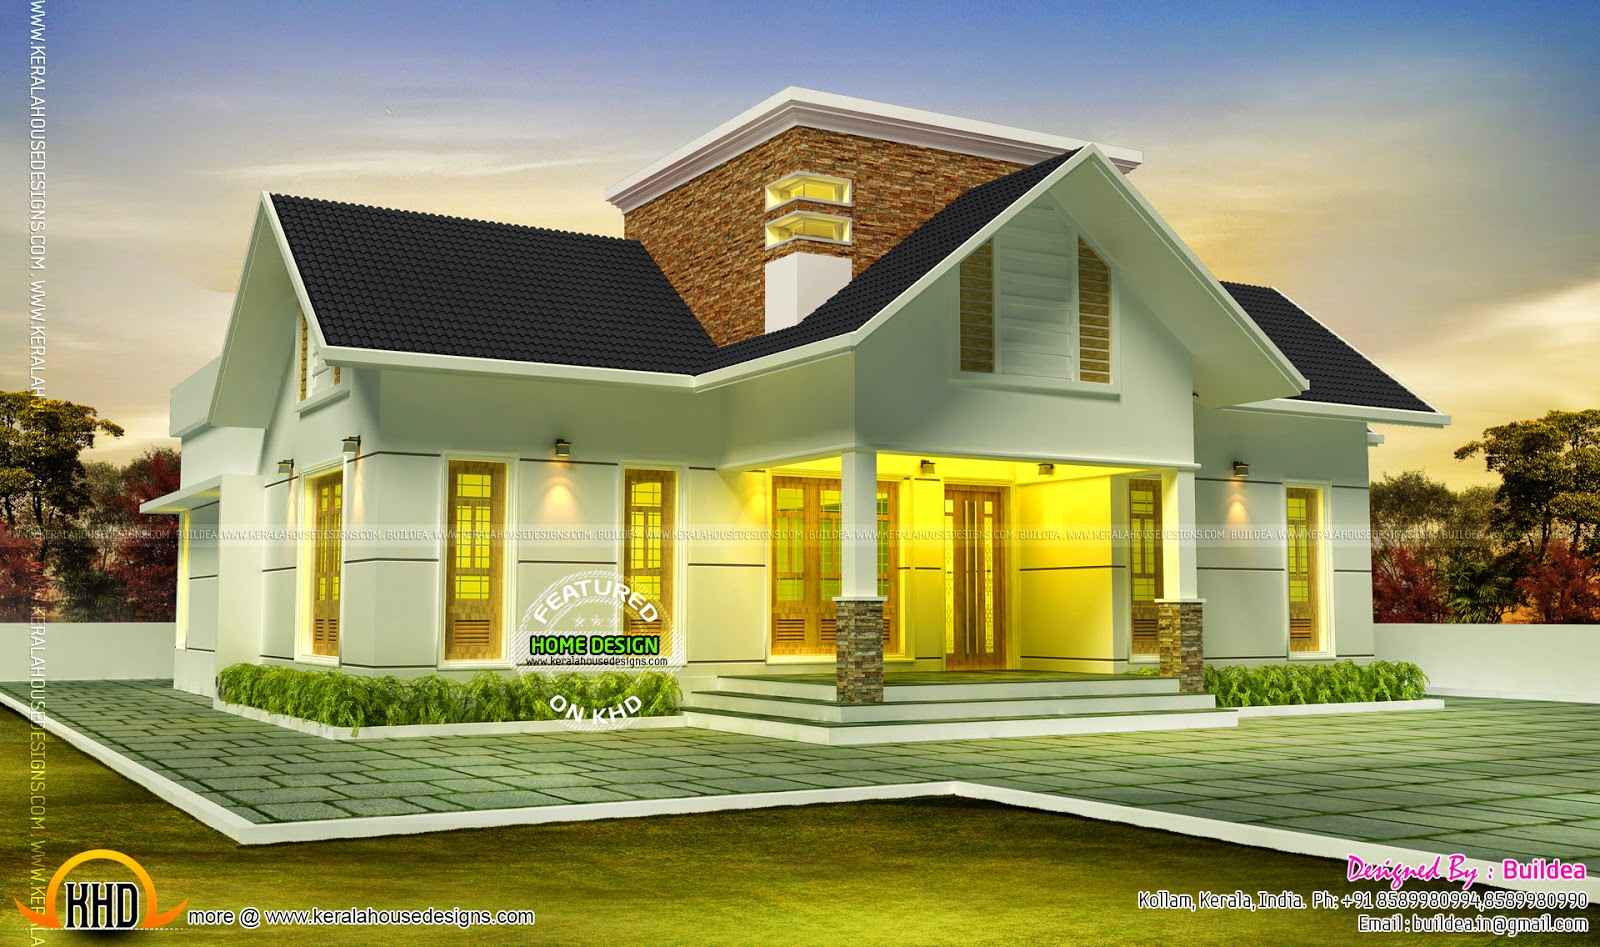 Very beautiful house kerala home design and floor plans for Beautiful home designs photos